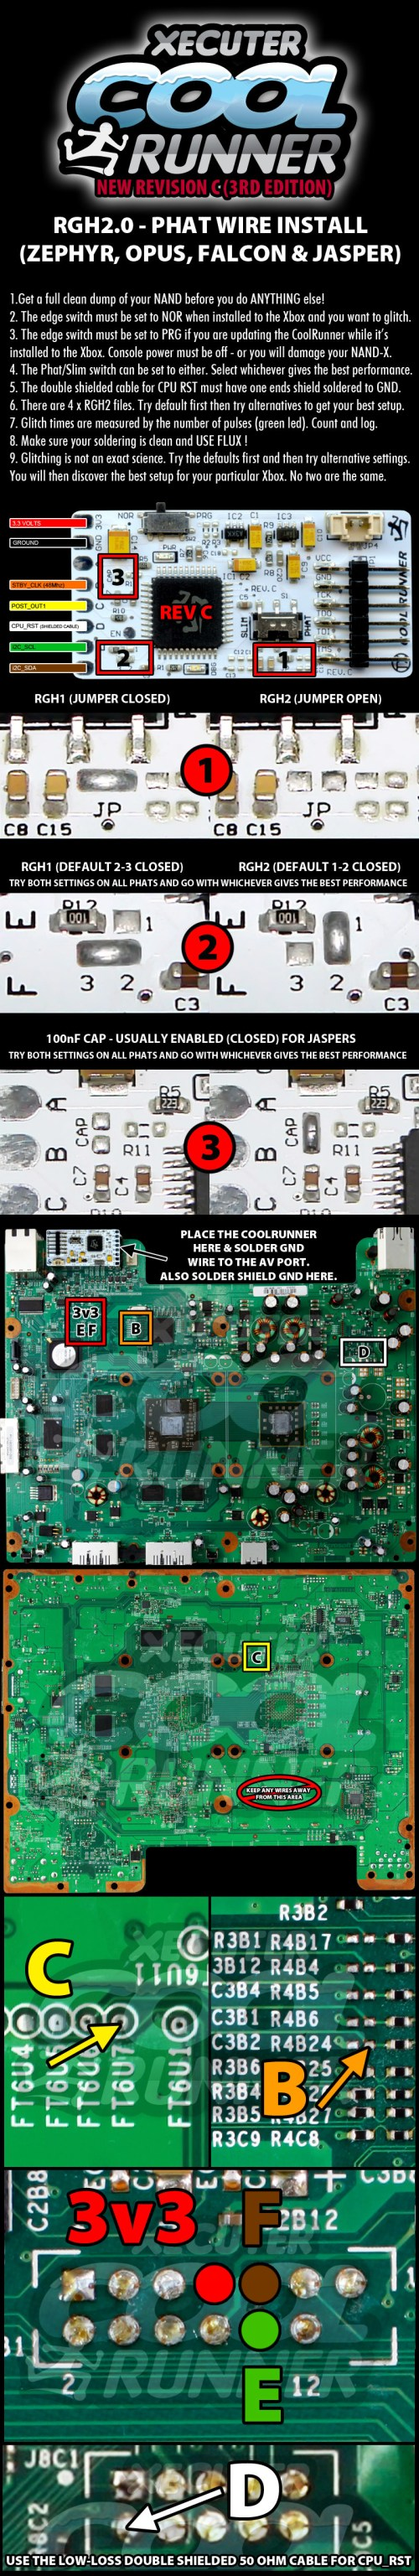 small resolution of  controller wiring diagram how to rgh any phat hdmi xbox 360 xbox gaming wemod community fat xbox